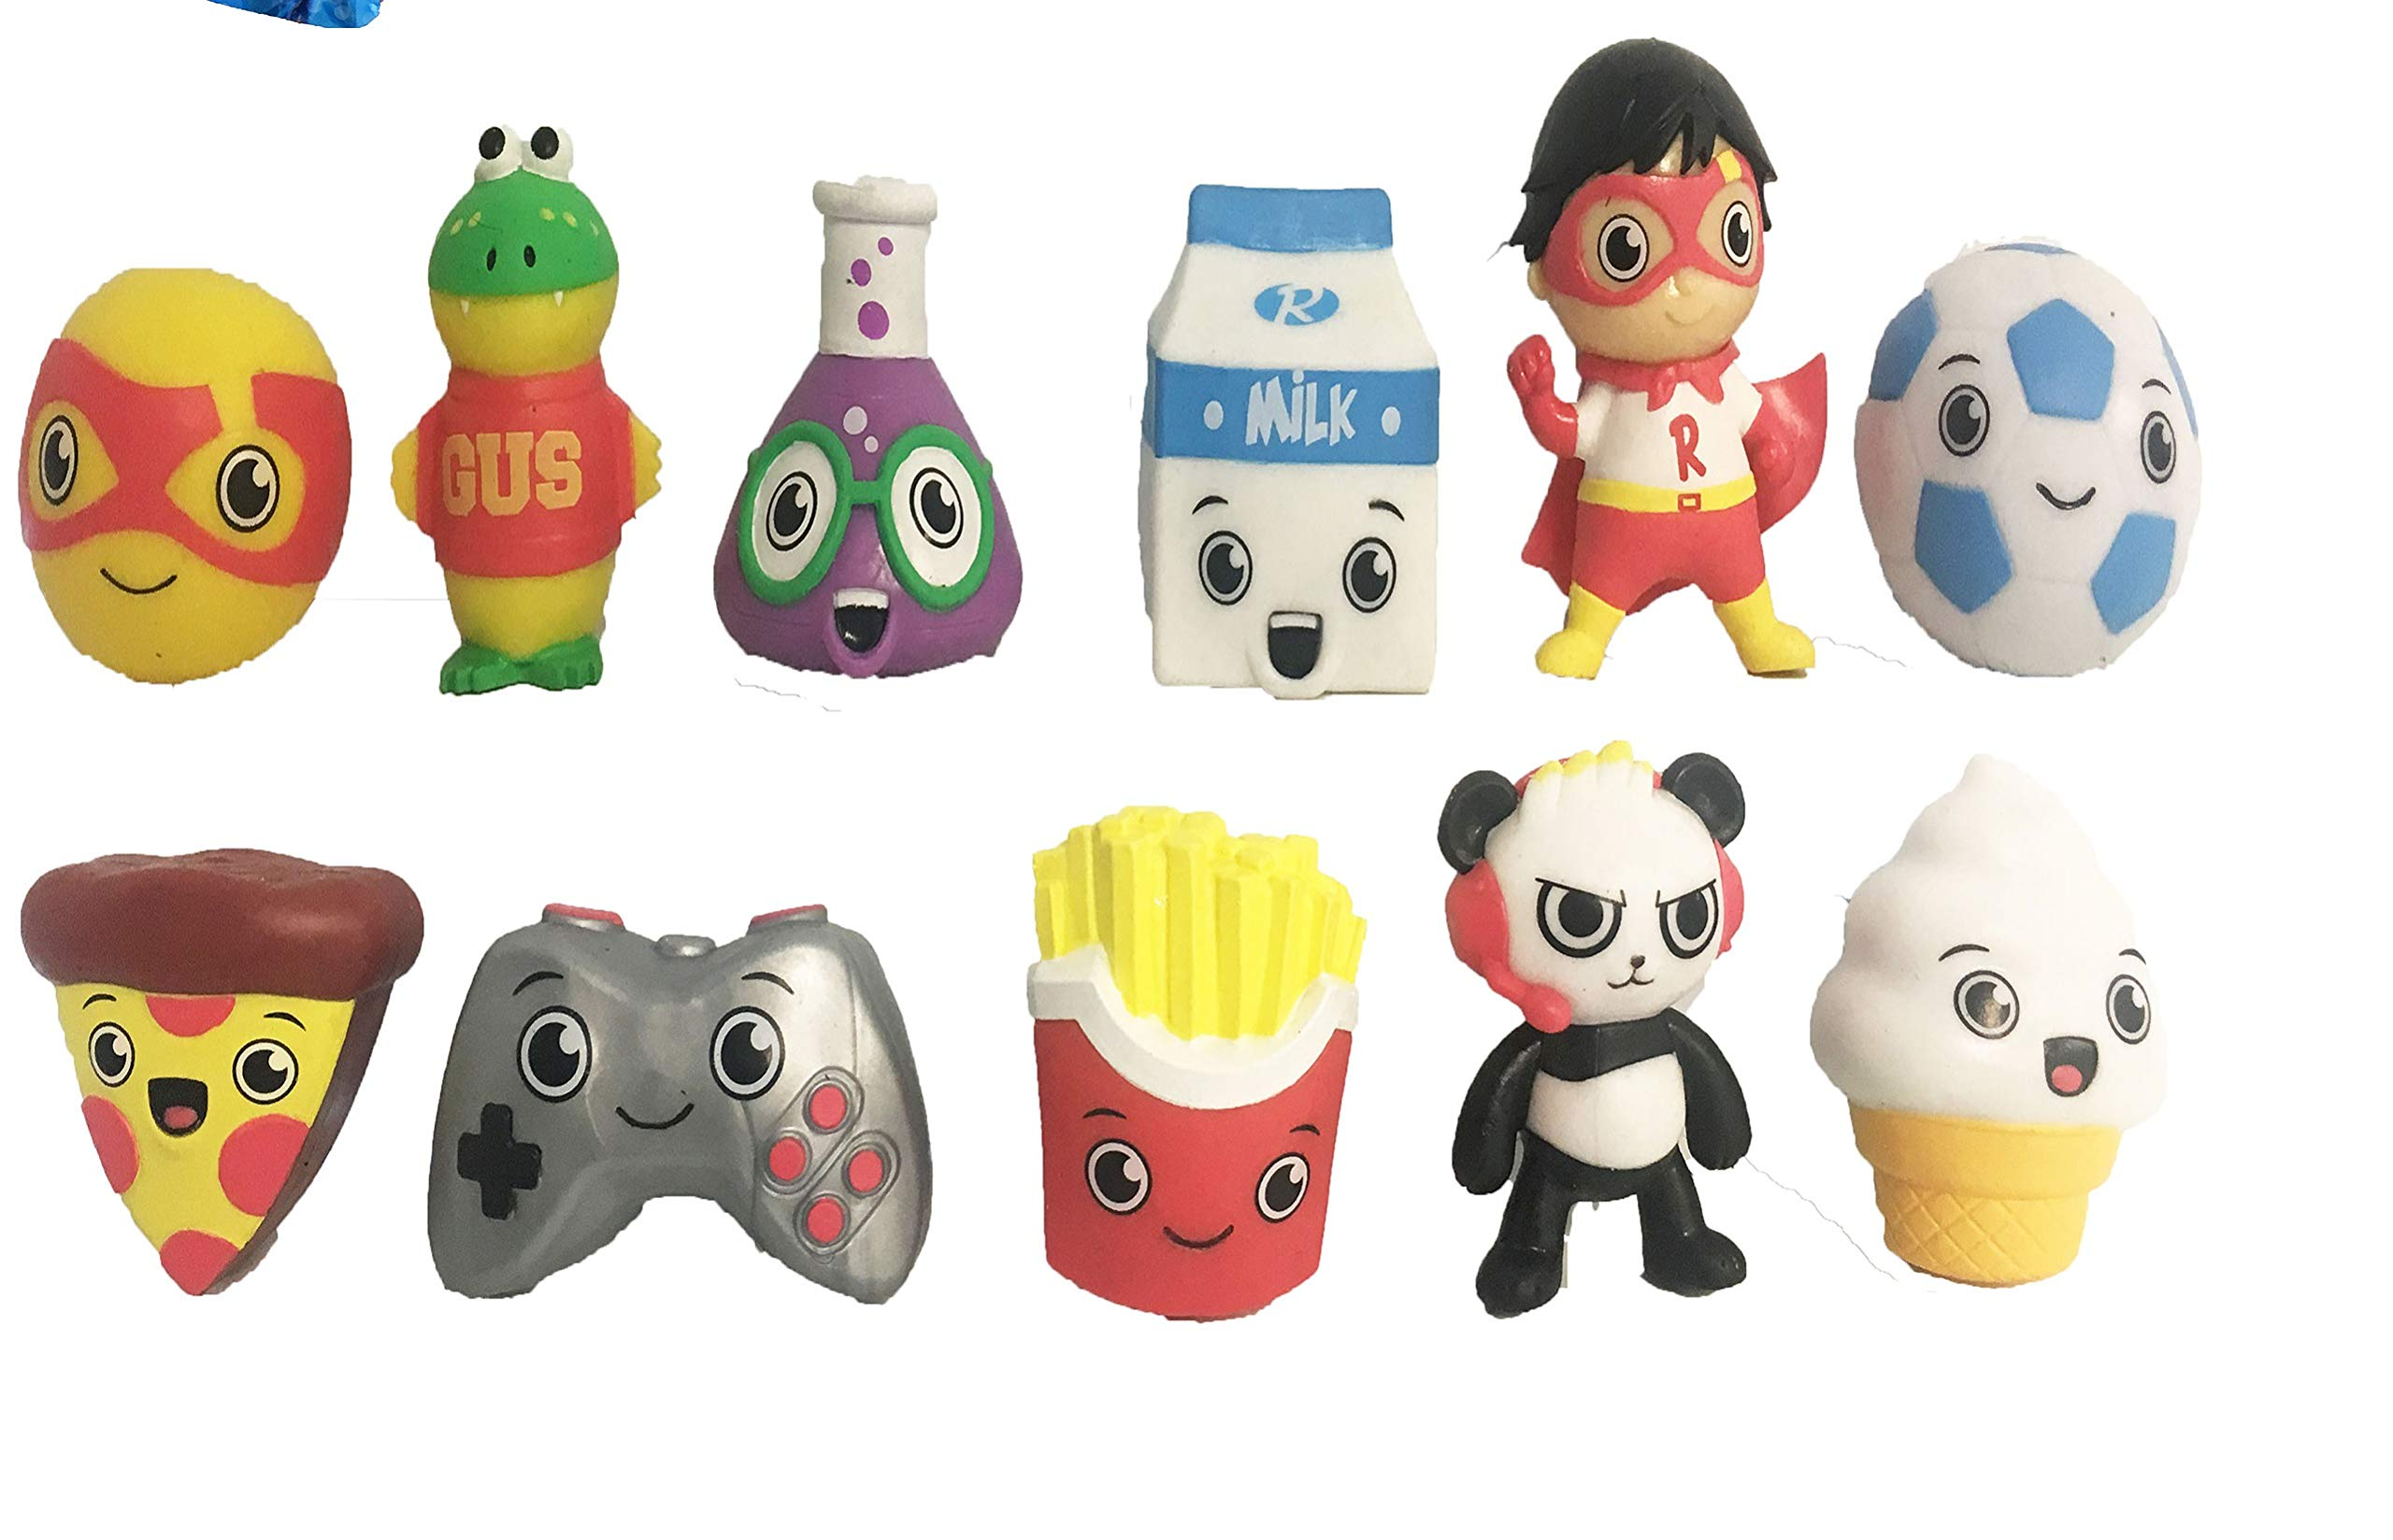 Ryan's World Surprise Jellies Squishy Toy Lot of 6 - Includes 6 Random Characters by Ryan's Toy Review by Ryan's World (Image #3)